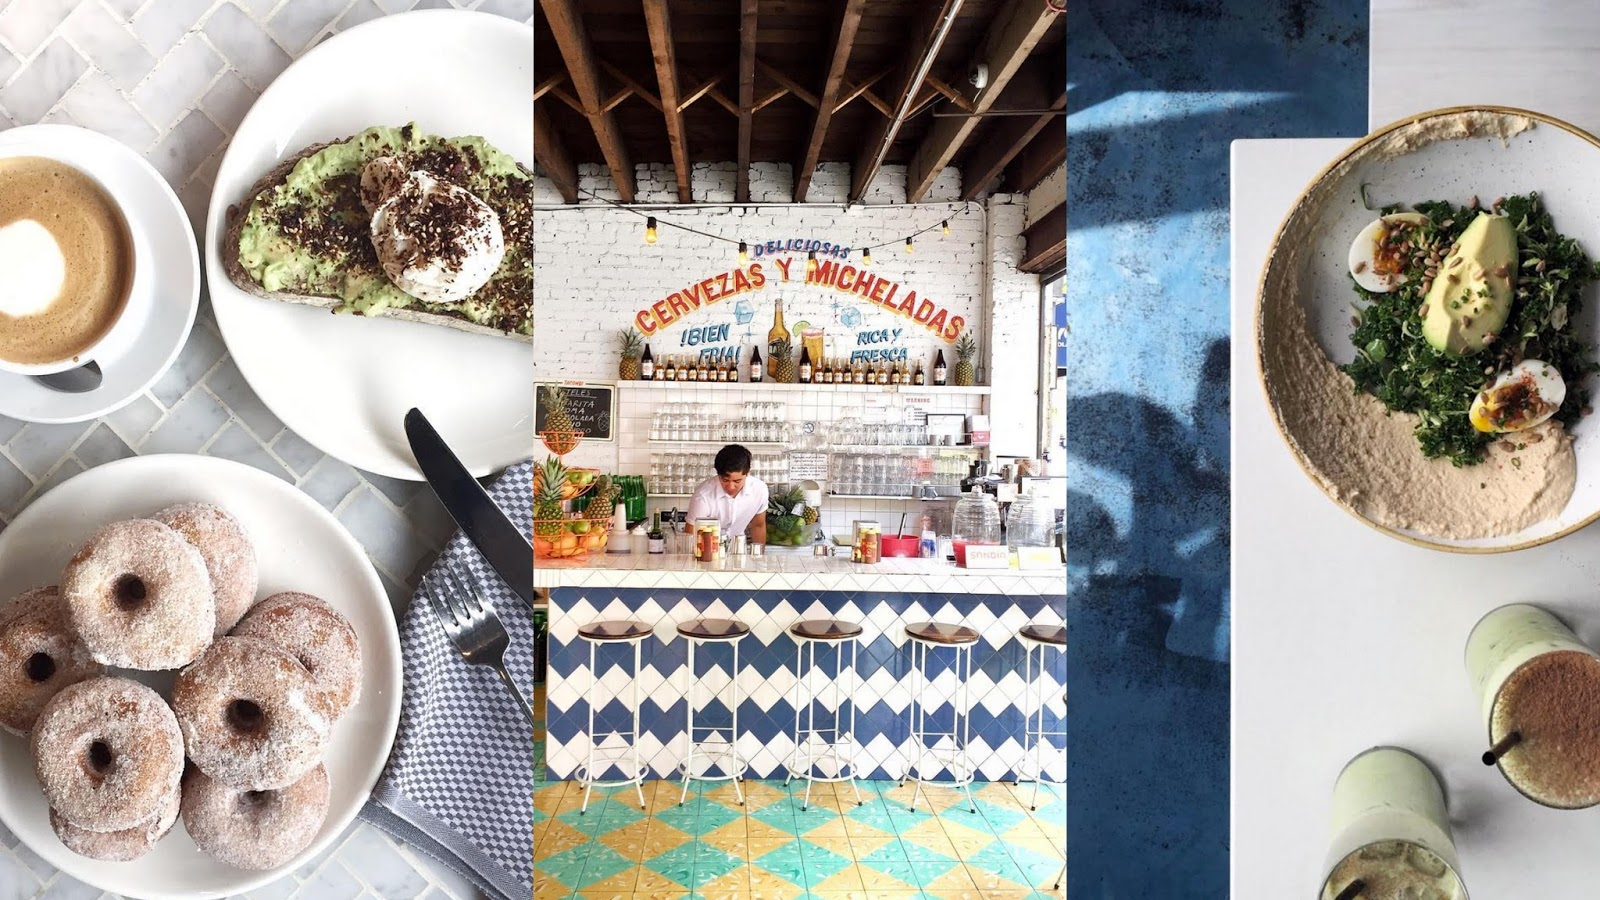 7 NYC instagram accounts to follow - Breadbutternyc